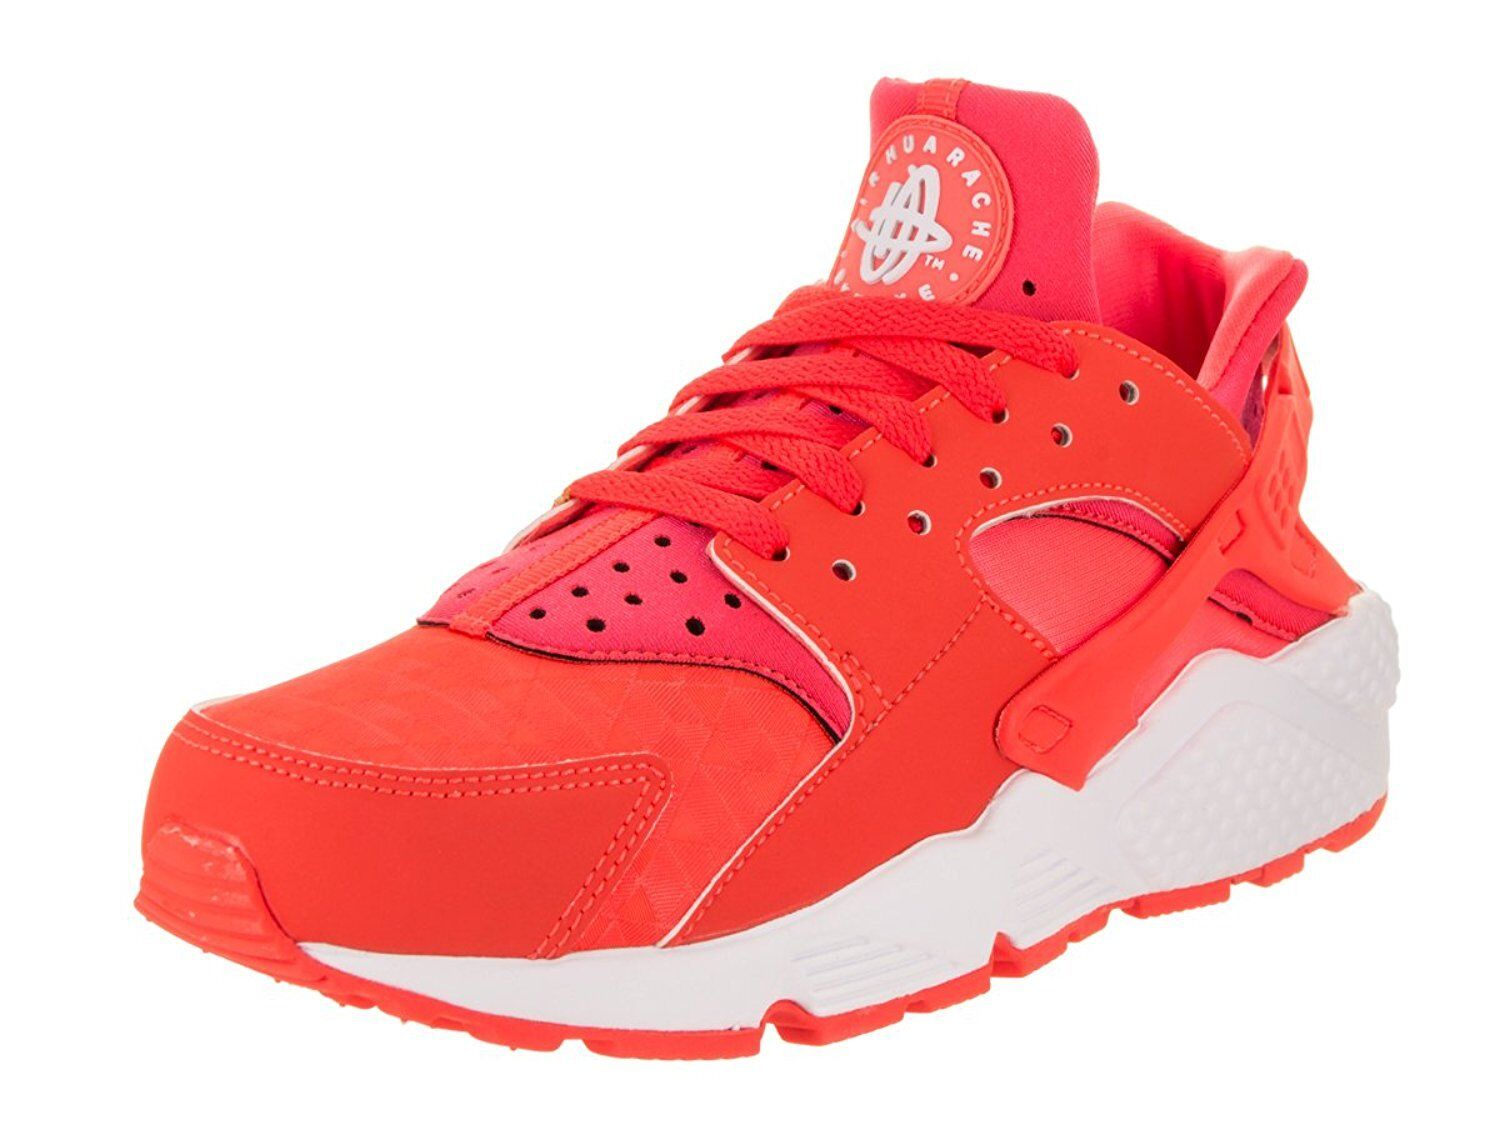 Nike Air Huarache 608 Run Bright Crimson/Bright Crimson (Womens) 634835 608 Huarache 7 8 49a46b